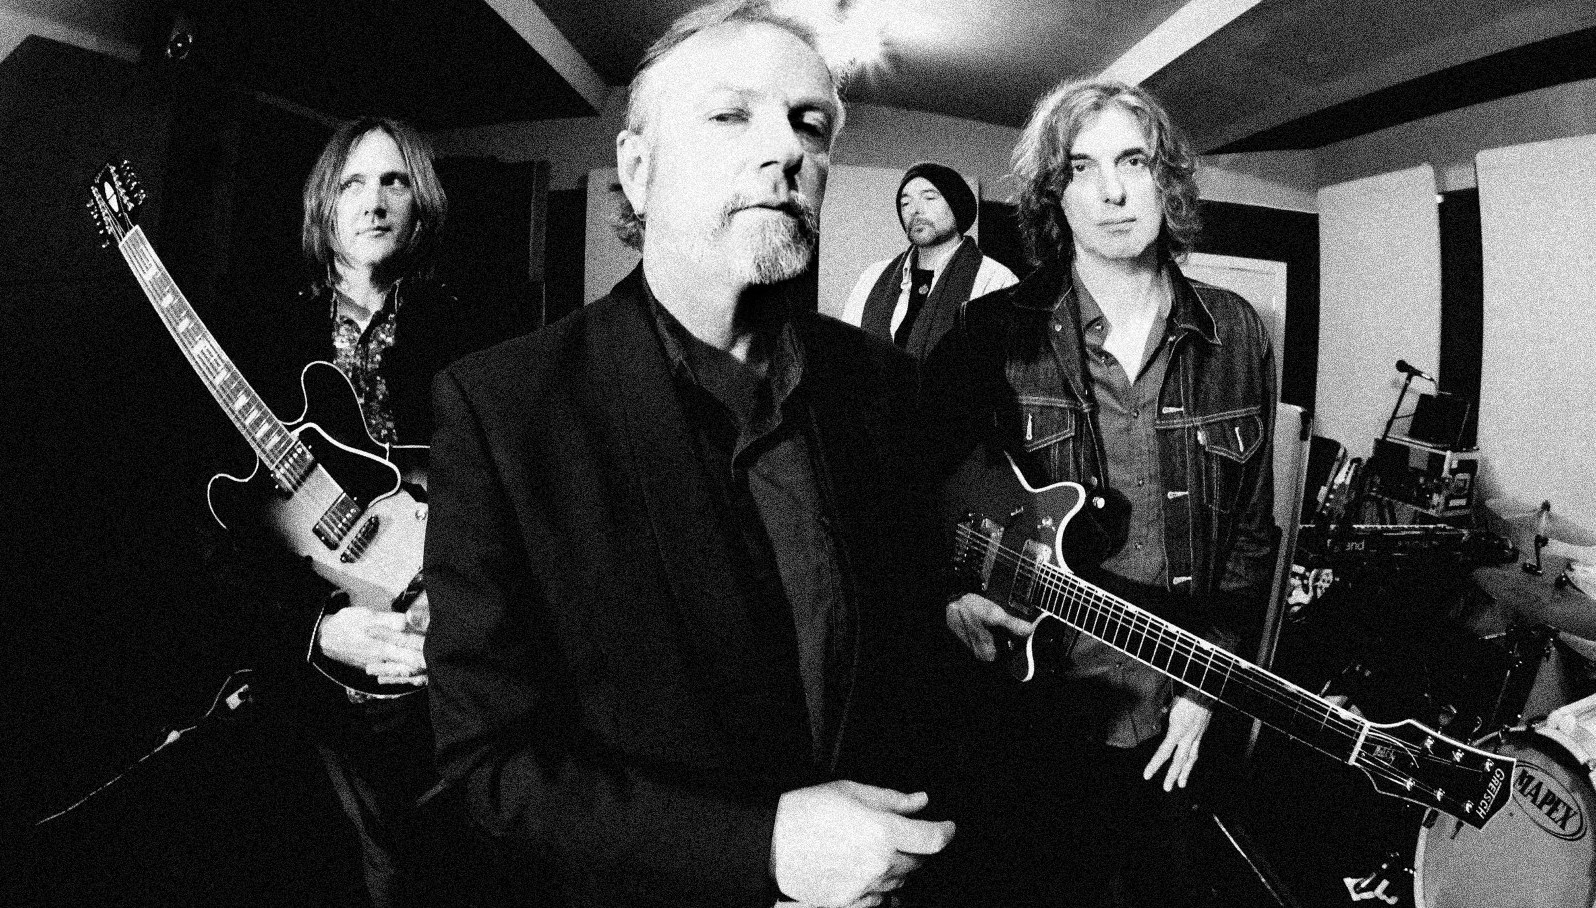 The Church, above, kicks off a co-headlining North American tour with the Psychedelic Furs on Aug. 8 in the Town Ballroom.